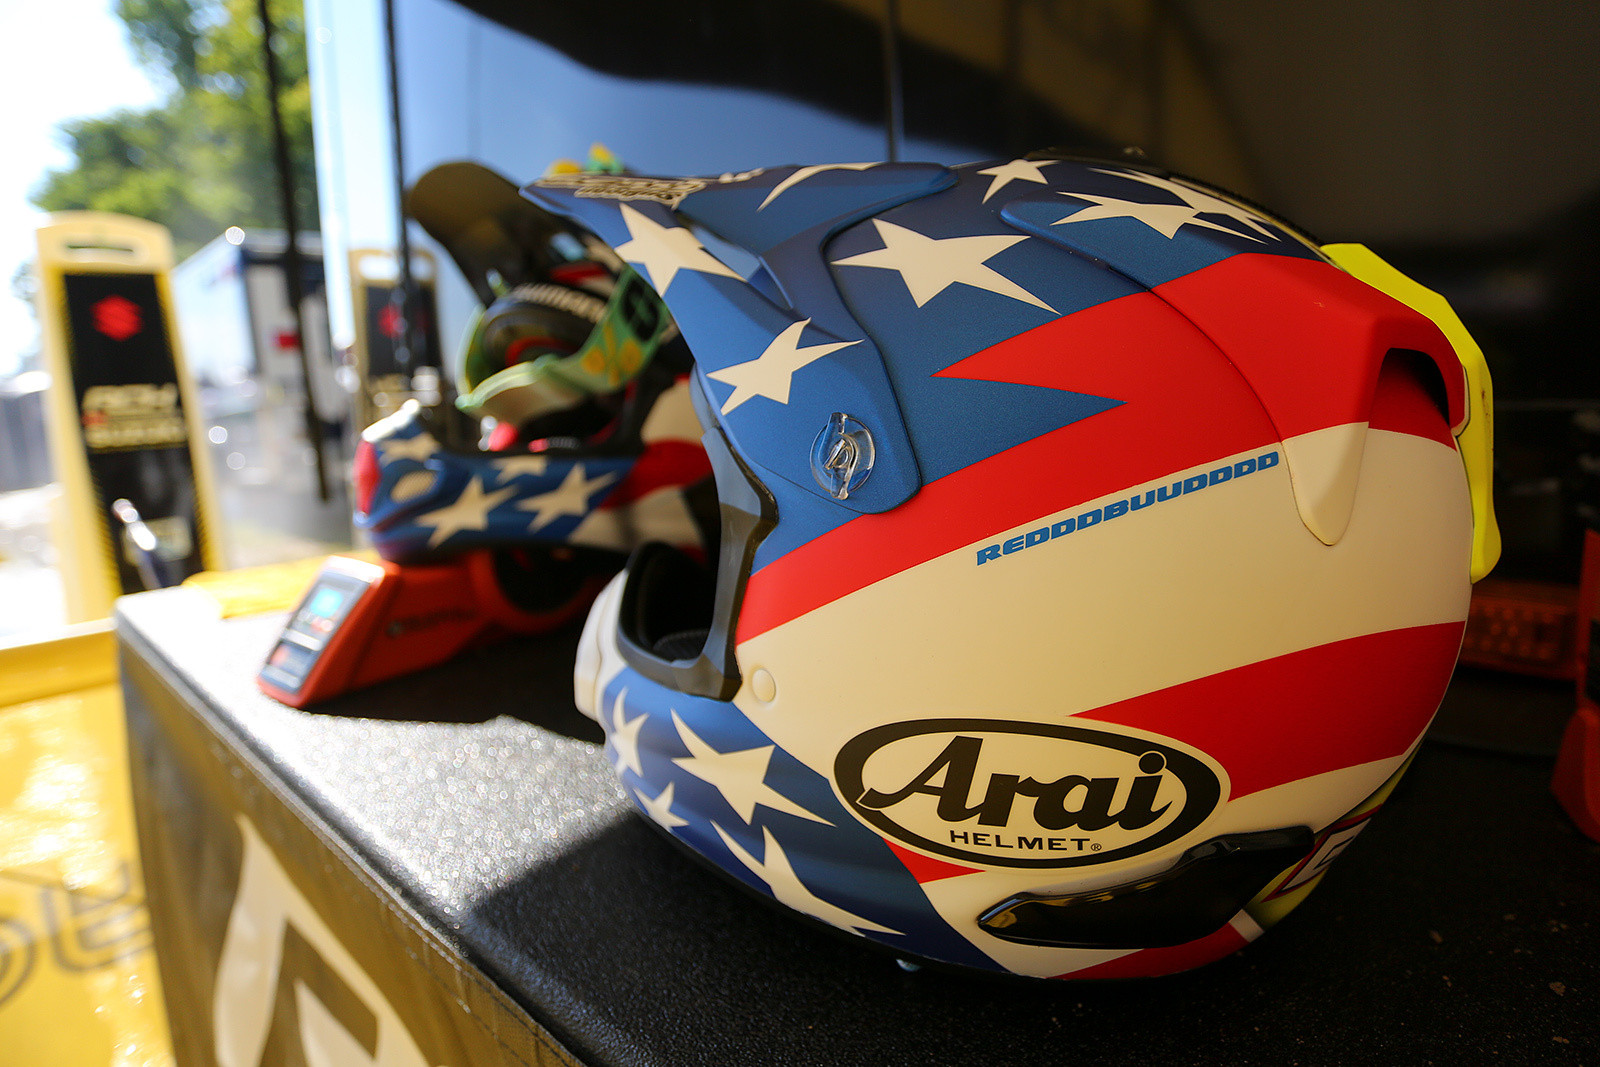 Let's dig into some of what makes RedBud the annual Woodstock of Motocross that it is. First up, how about the custom helmets that Beam Designs did for Broc Tickle and Justin Bogle? RedddBuuddddd!